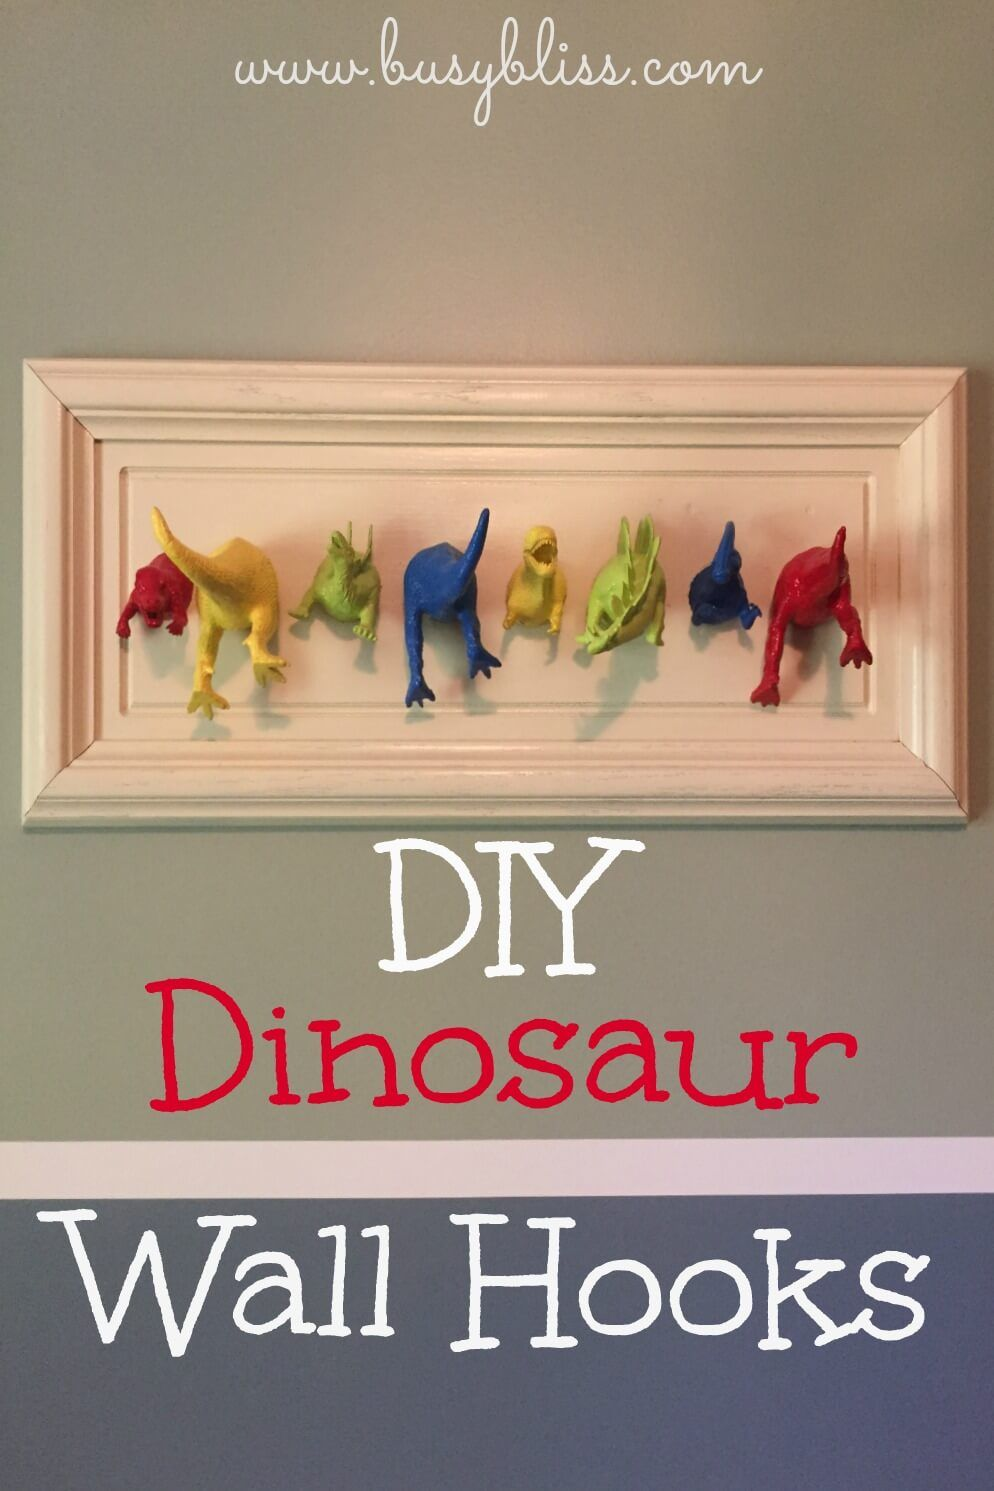 Baby Dinosaur Bedroom Decorations: Toy, Bedrooms And Walls